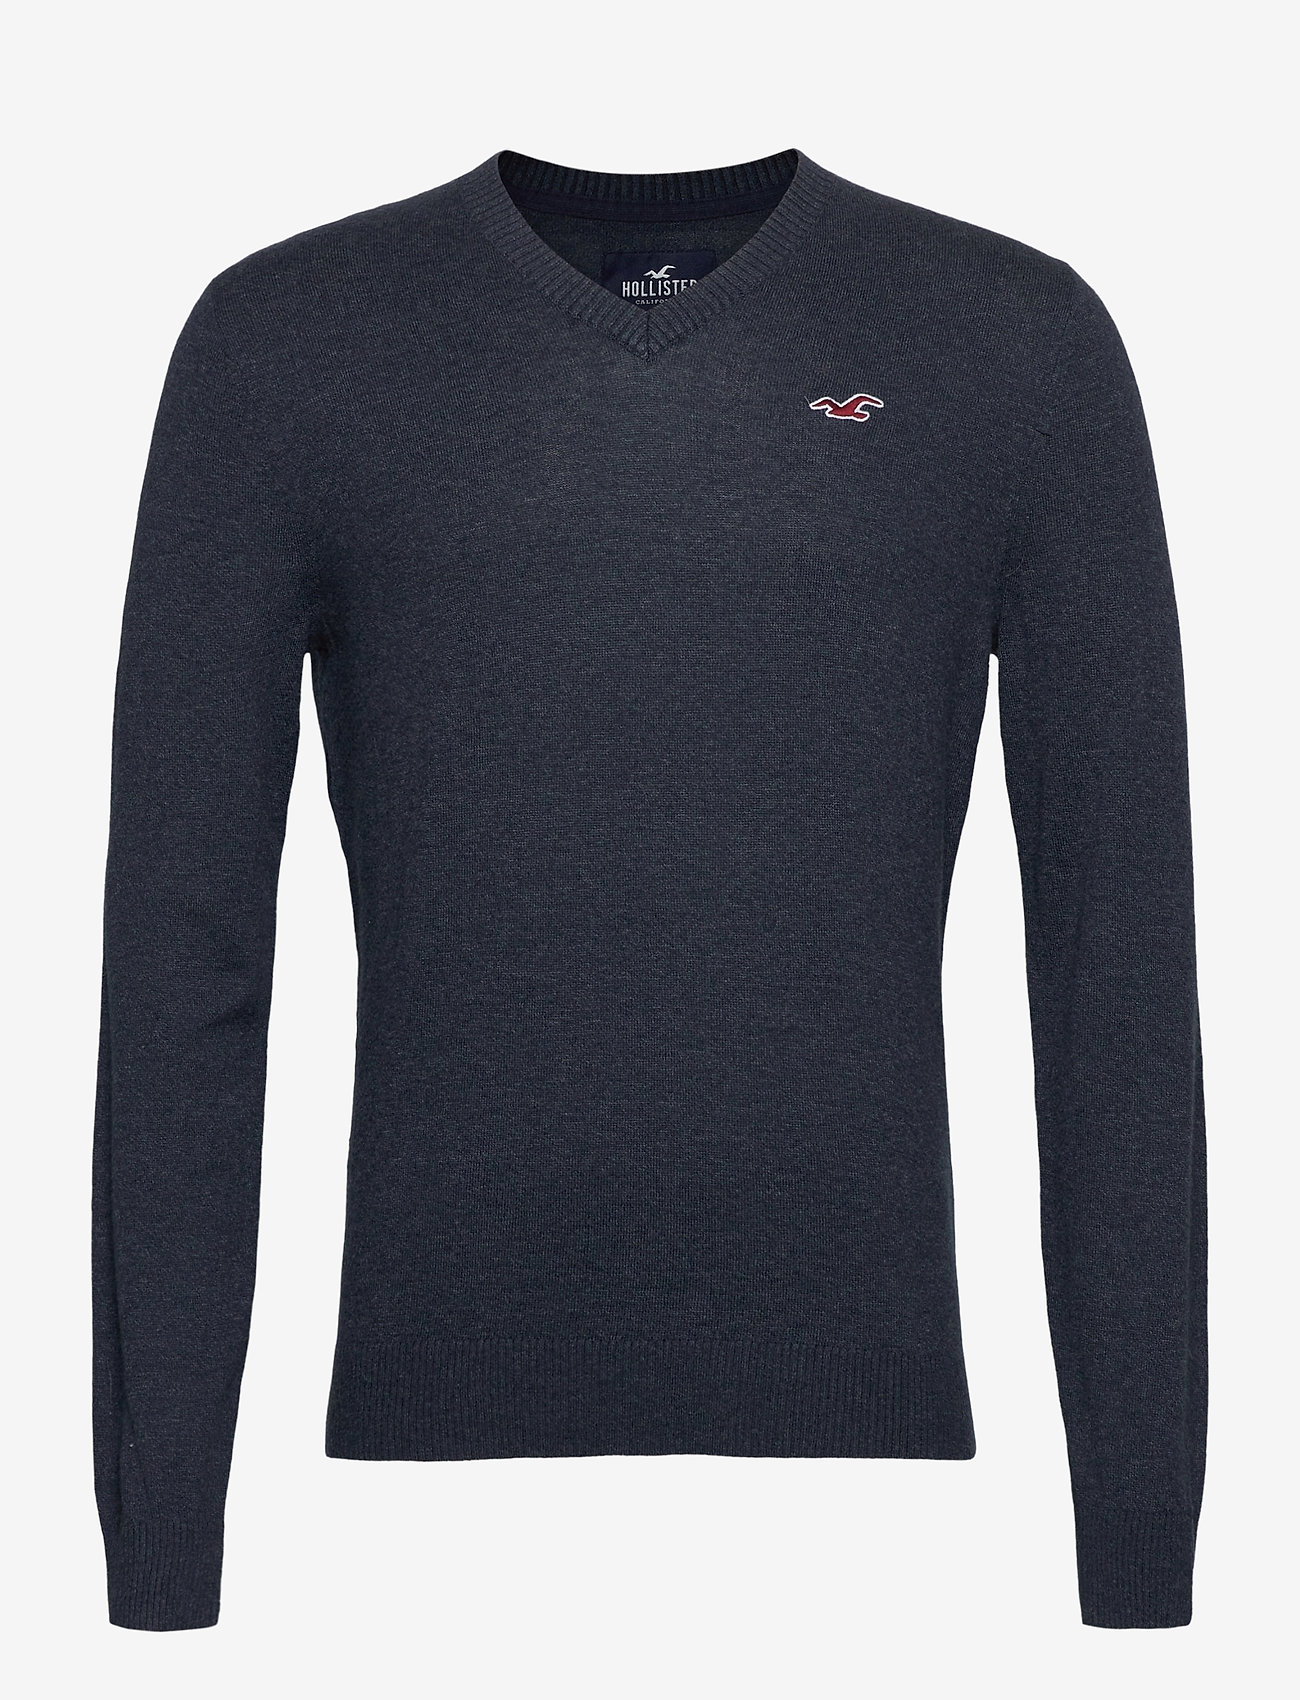 Hollister - HCo. GUYS SWEATERS - tricots basiques - navy sd/texture - 0